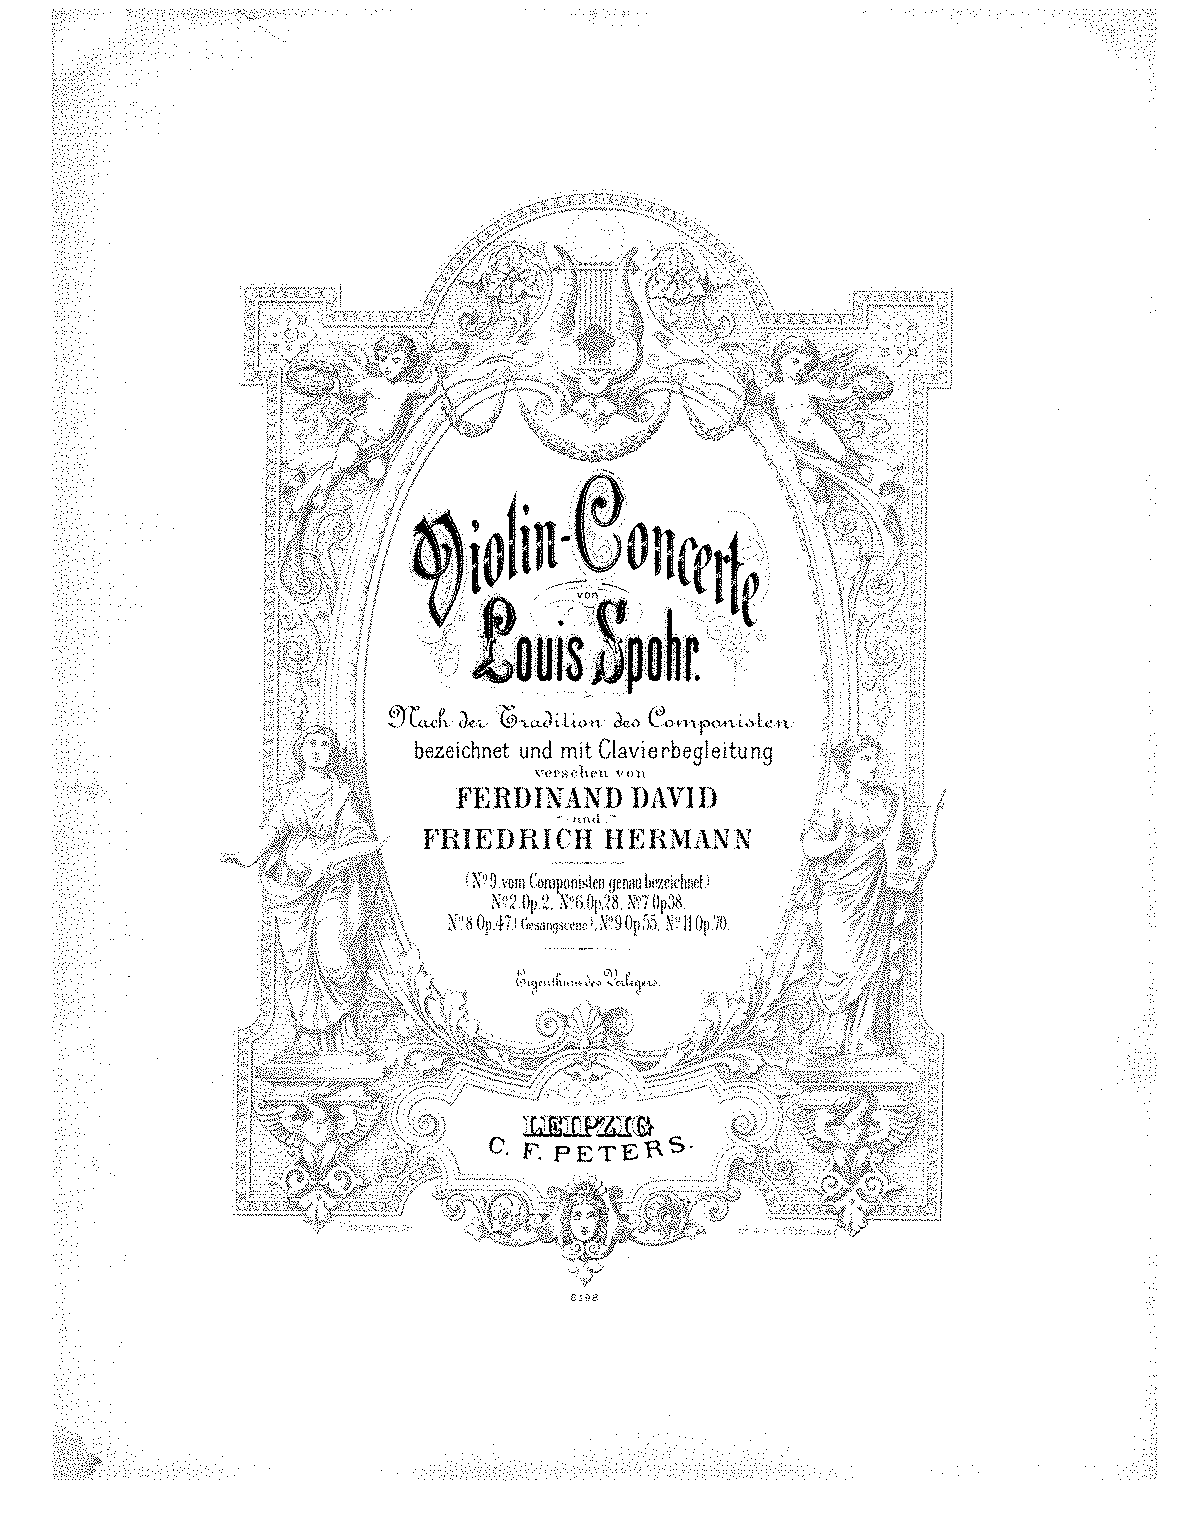 SIBLEY1802.5617.14295.e0f1-39087009420680color+cover.pdf